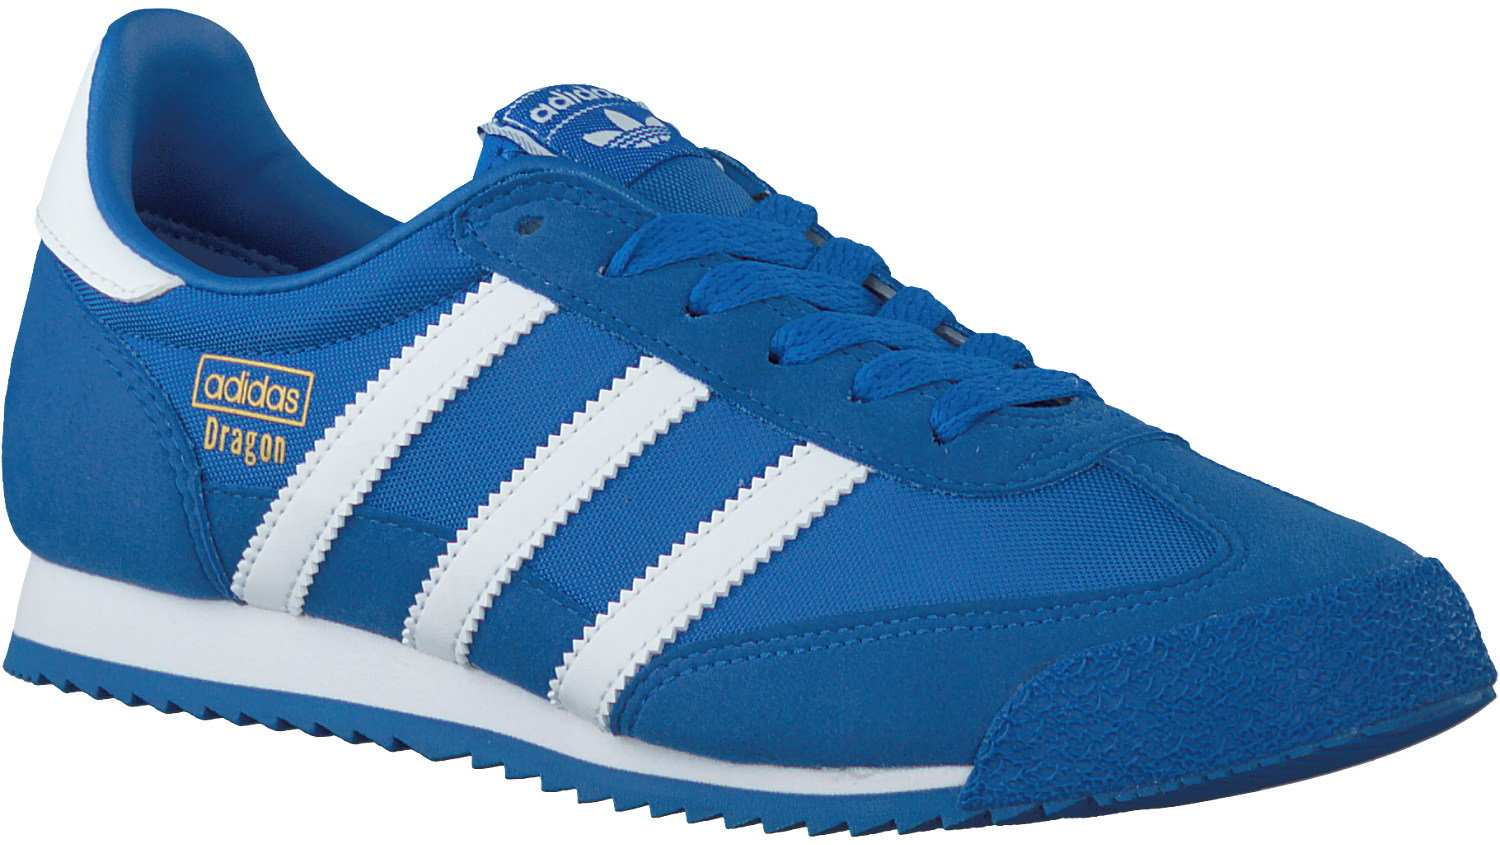 adidas dragon kinder 32